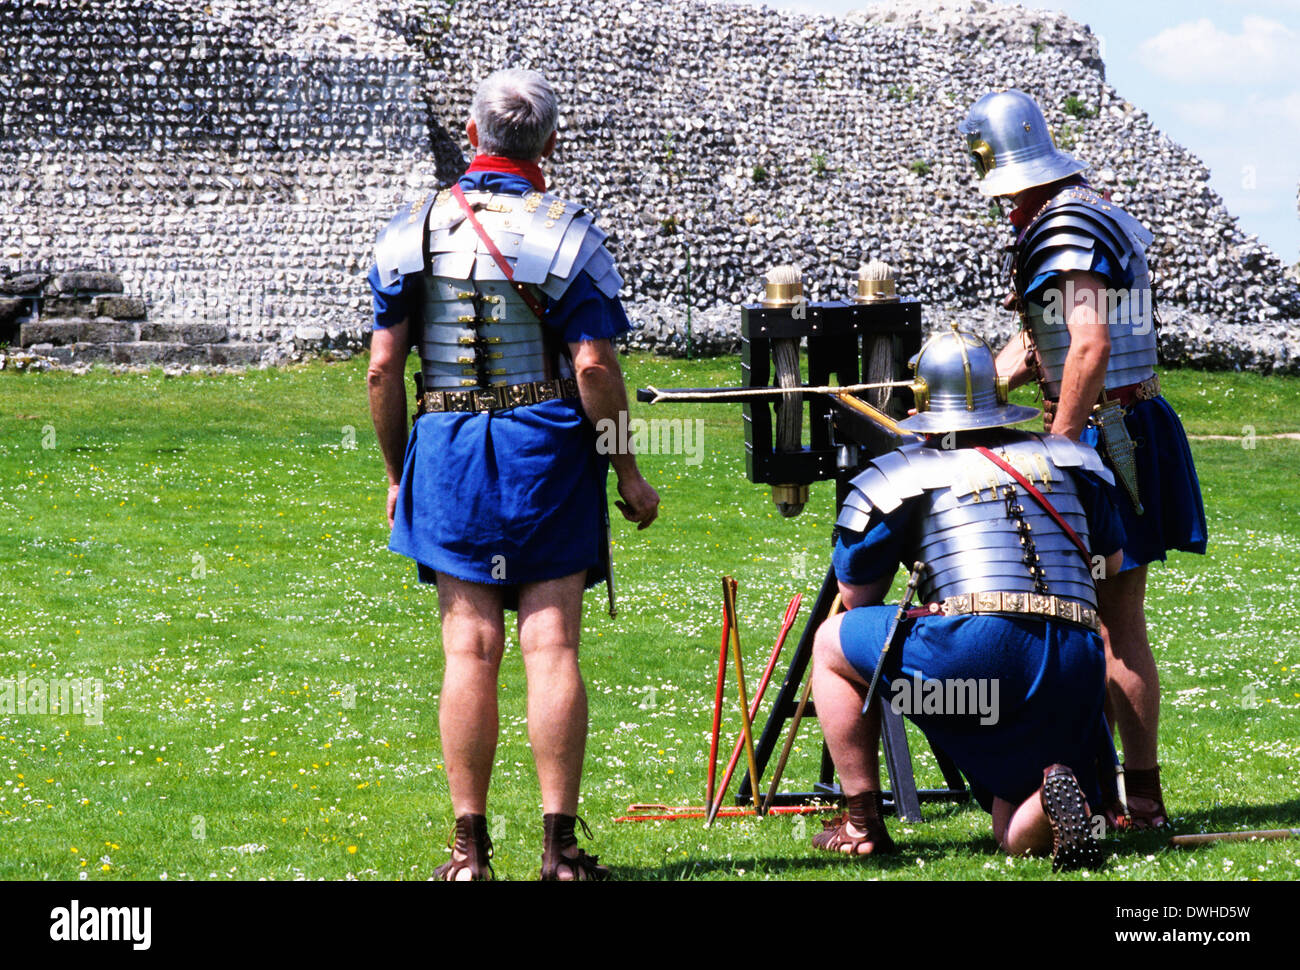 Roman ballista and soldiers, 2nd century, historical re-enactment soldier weaponry England UK - Stock Image